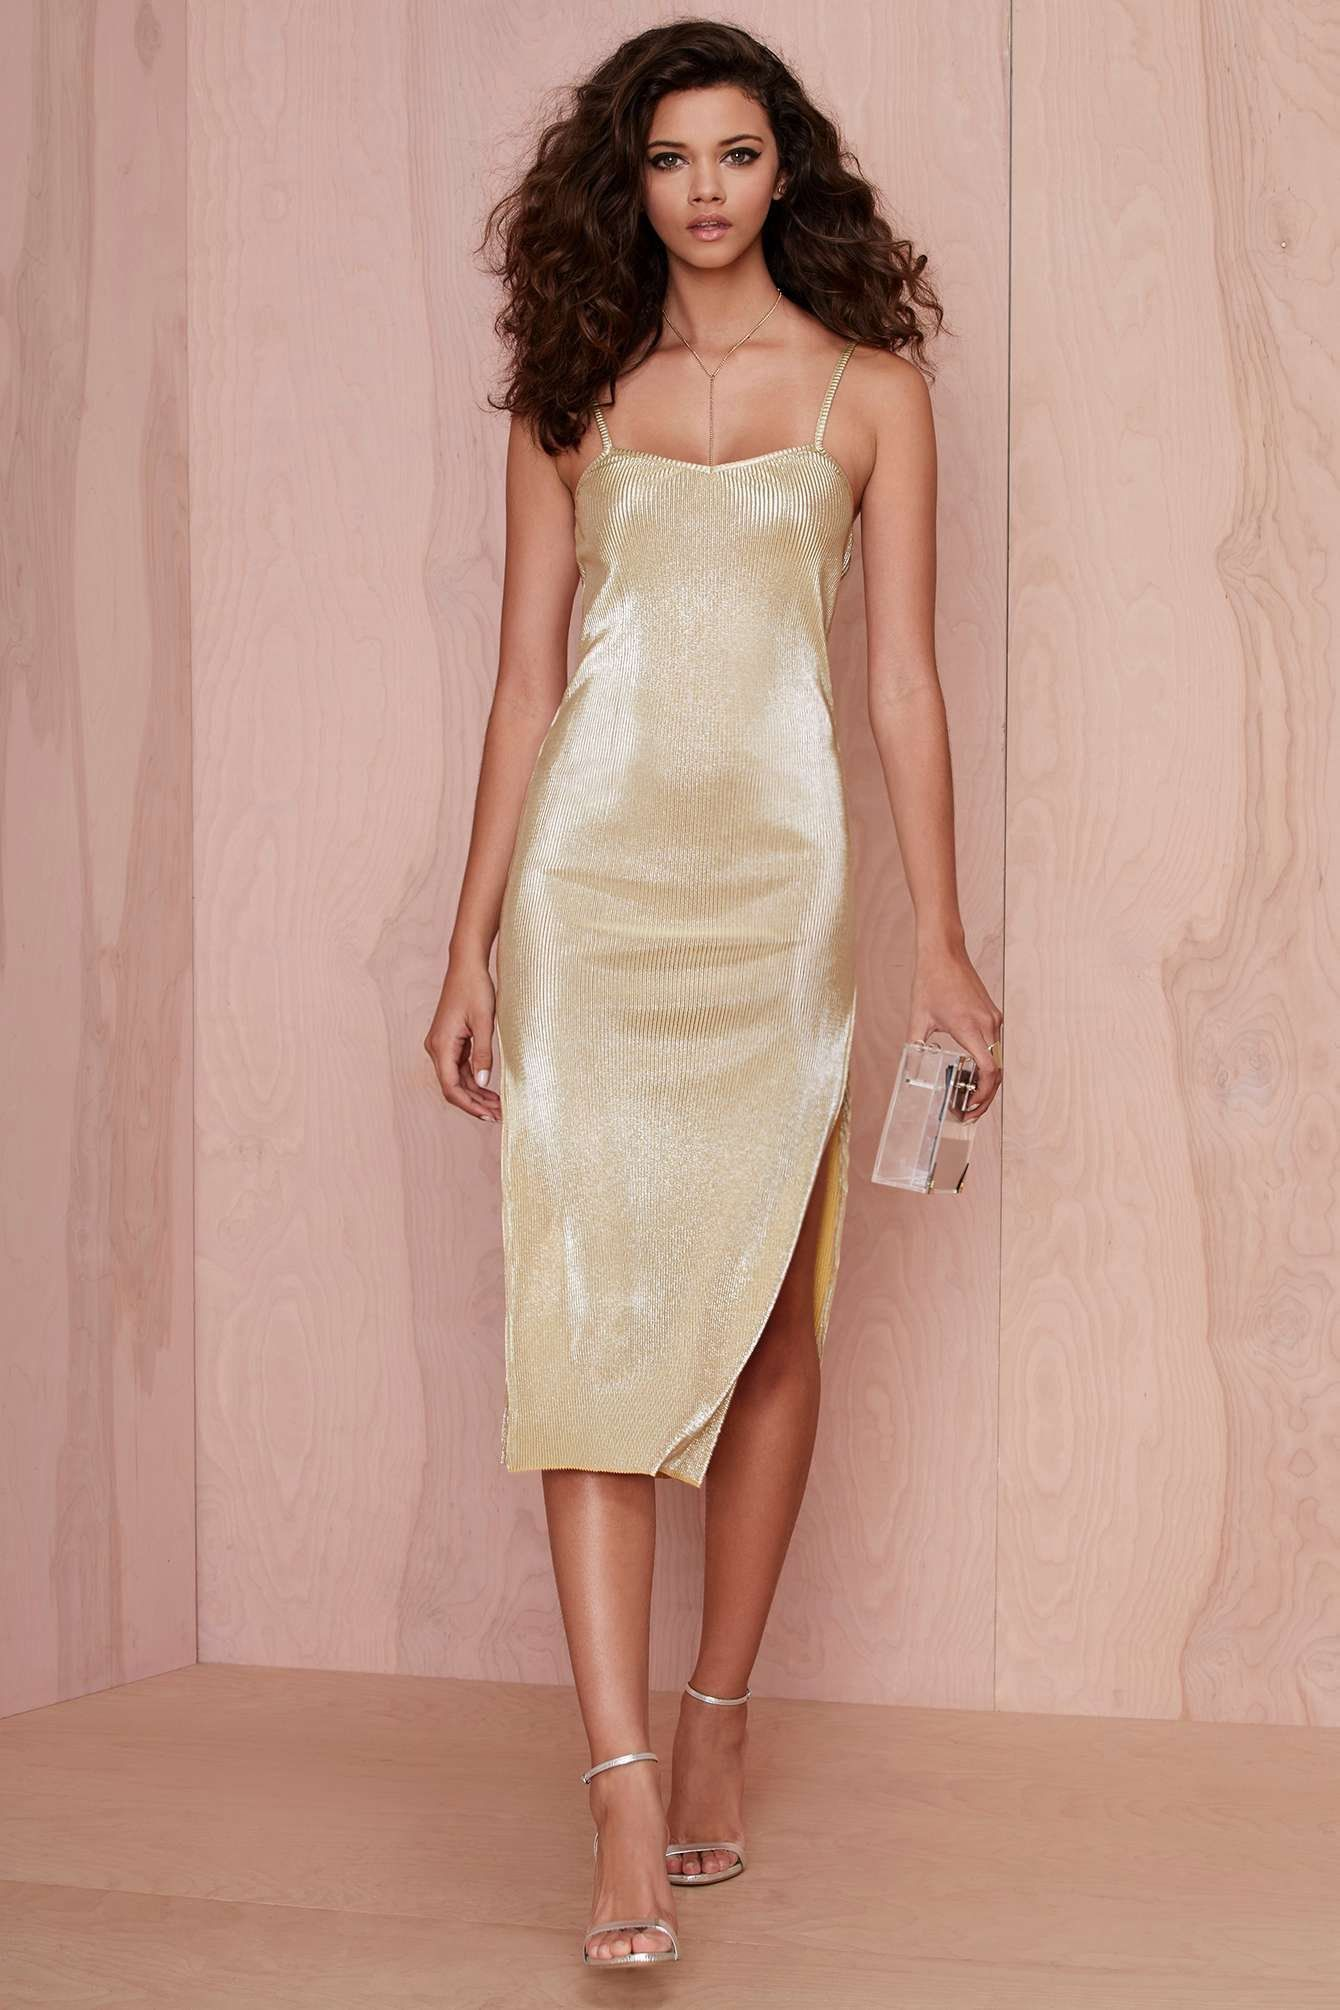 Women's Gold Sheath Dress, Silver Leather Heeled Sandals, Clear ...